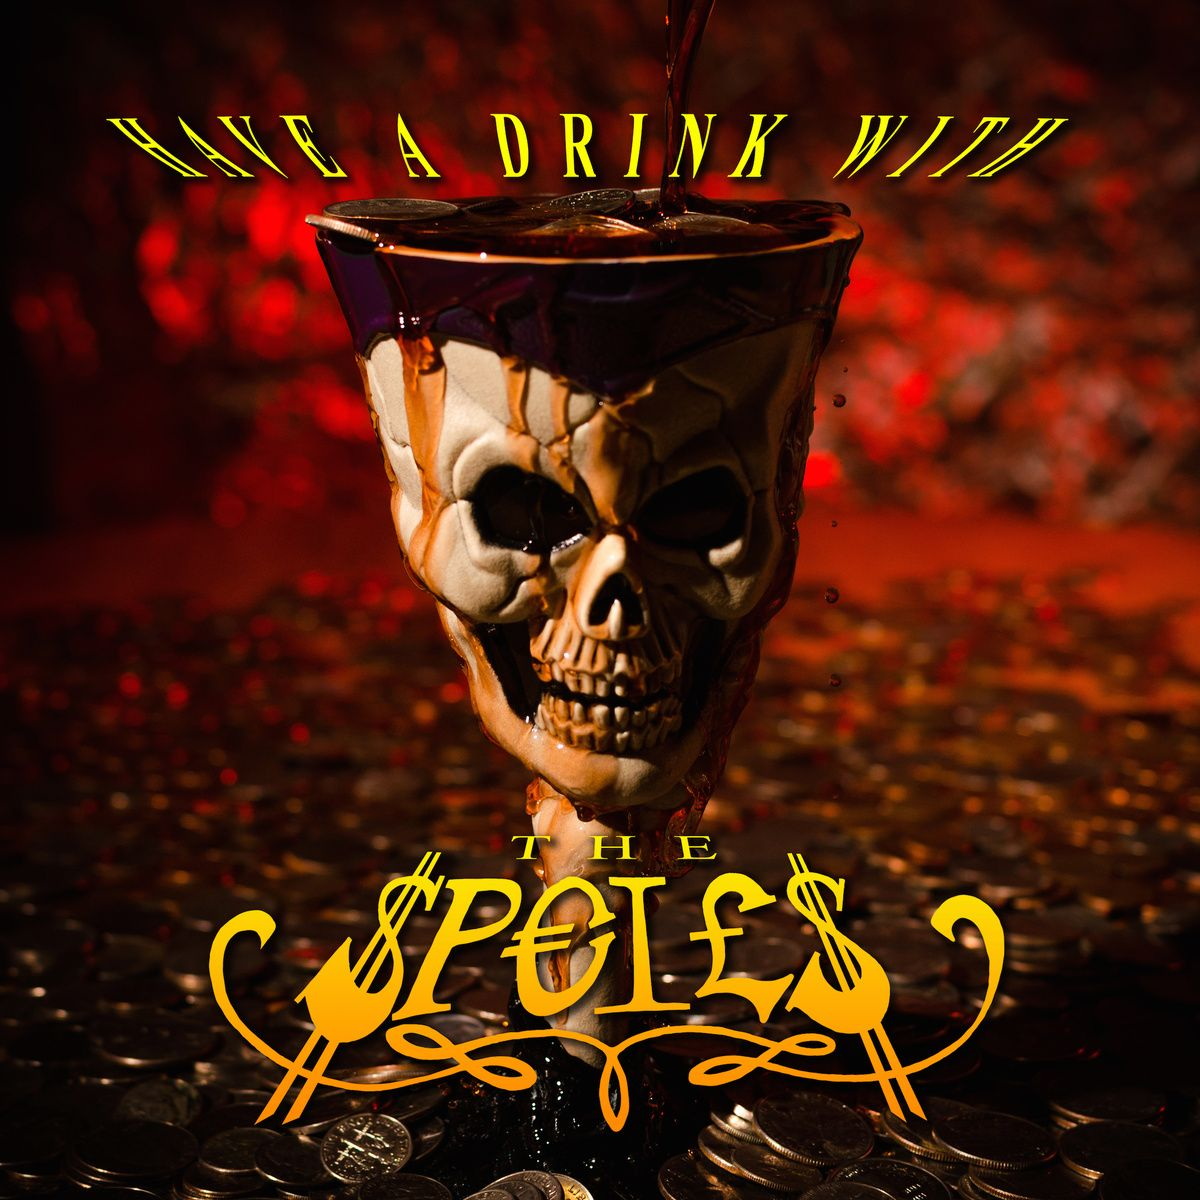 The Spoils - Have a Drink With...